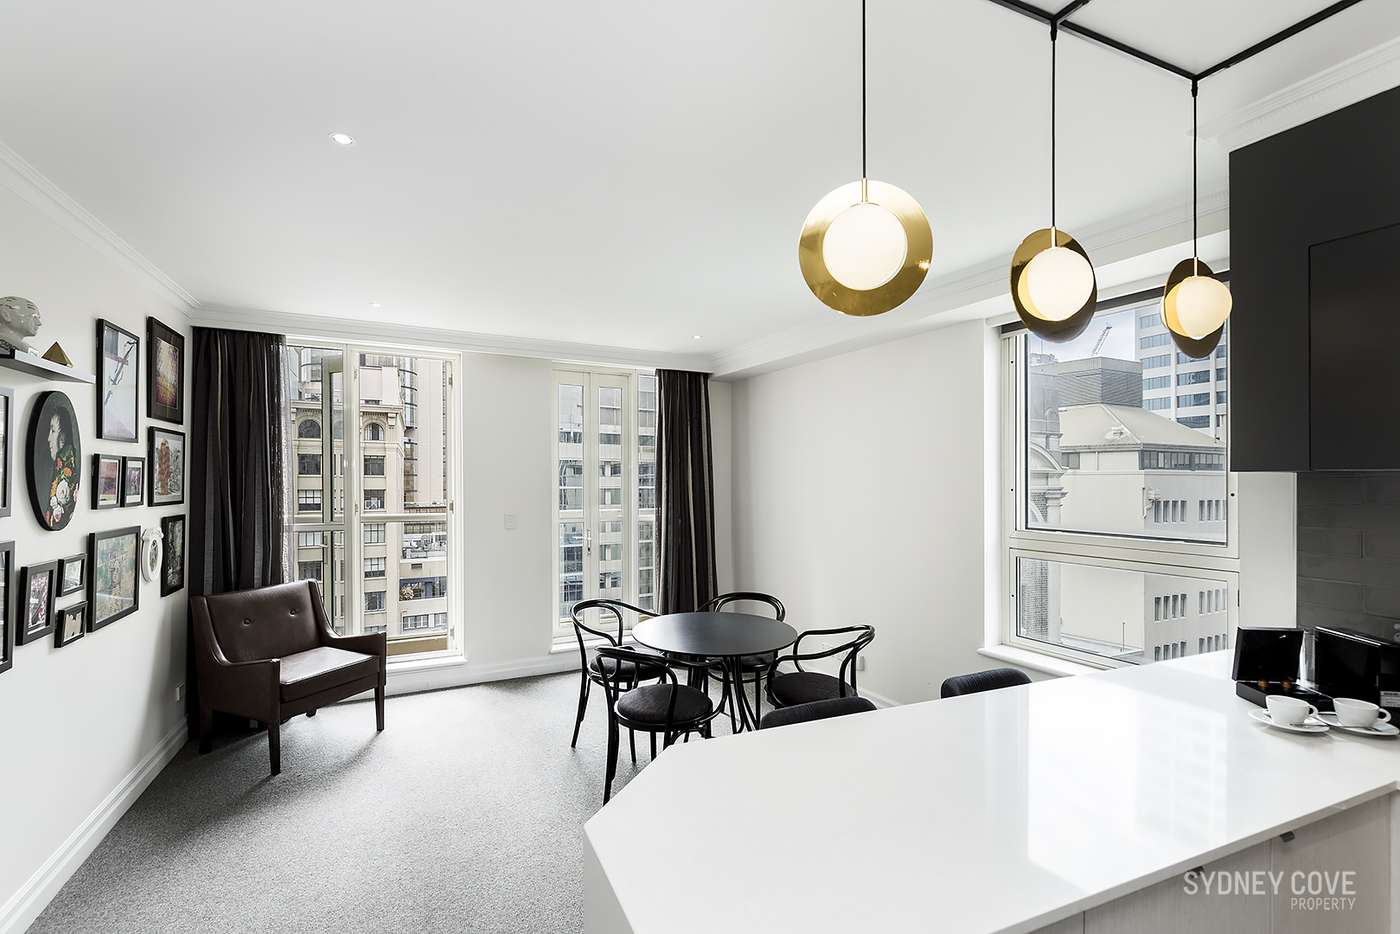 Main view of Homely apartment listing, 2 Bond Street, Sydney NSW 2000